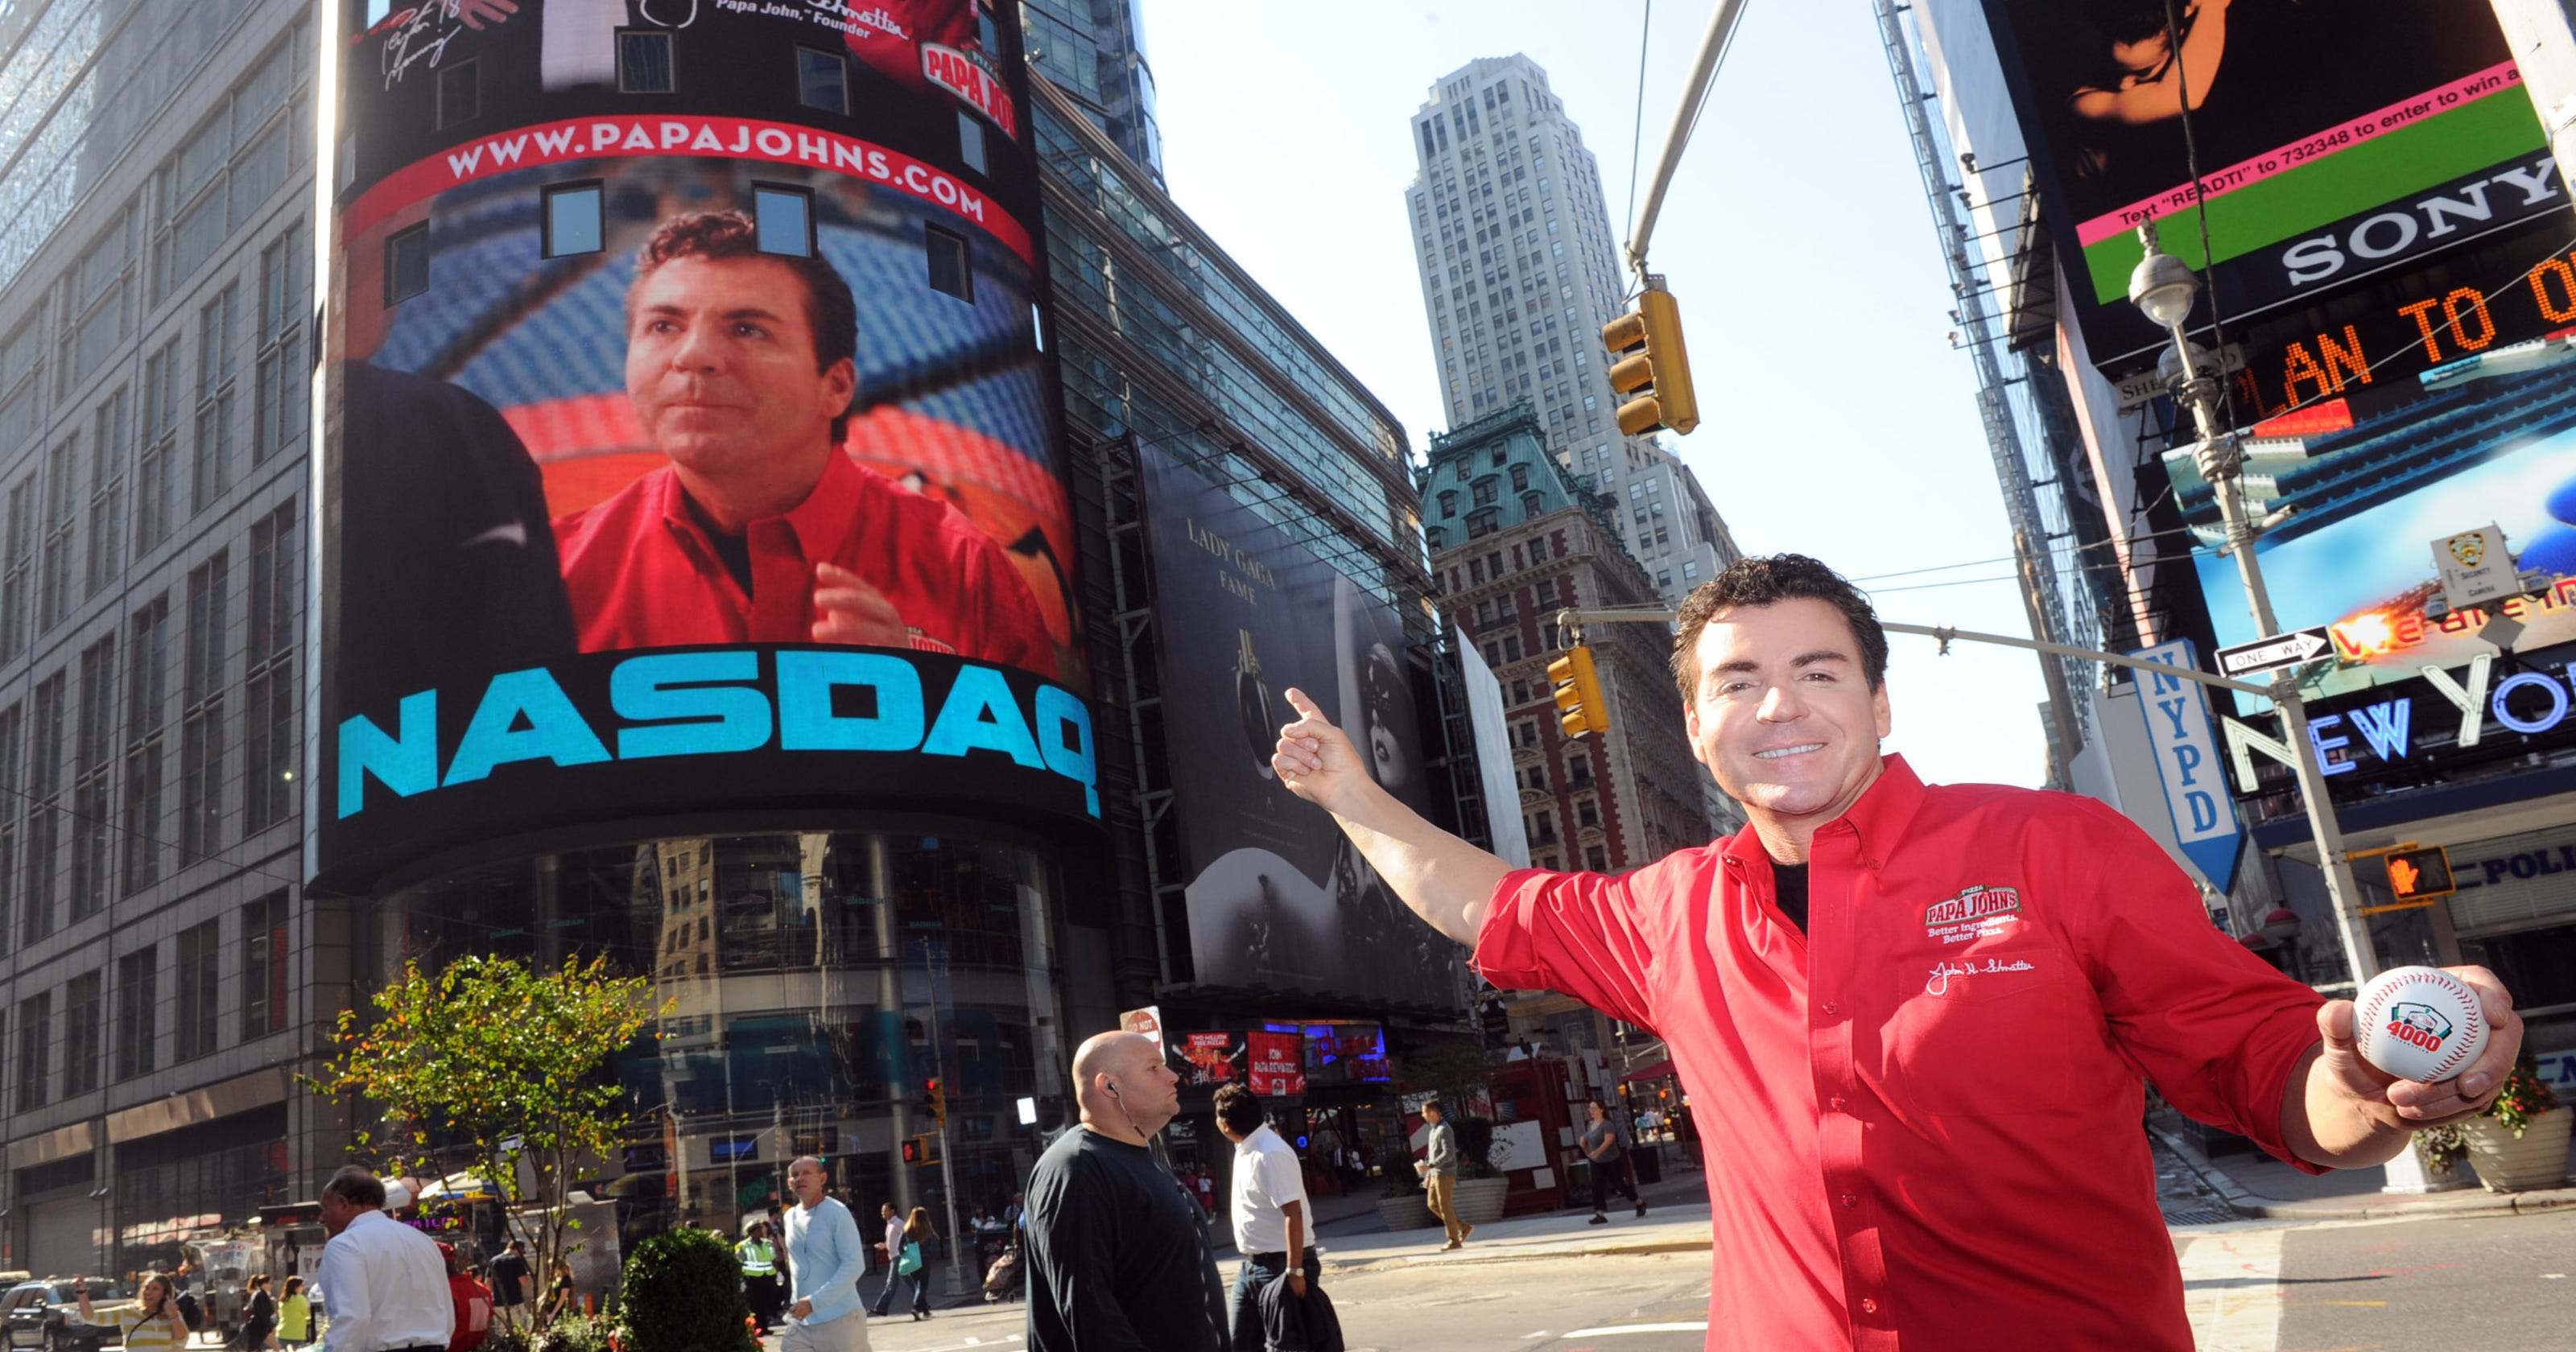 180a0d15 The rise and fall of John Schnatter: His mouth was his own worst enemy